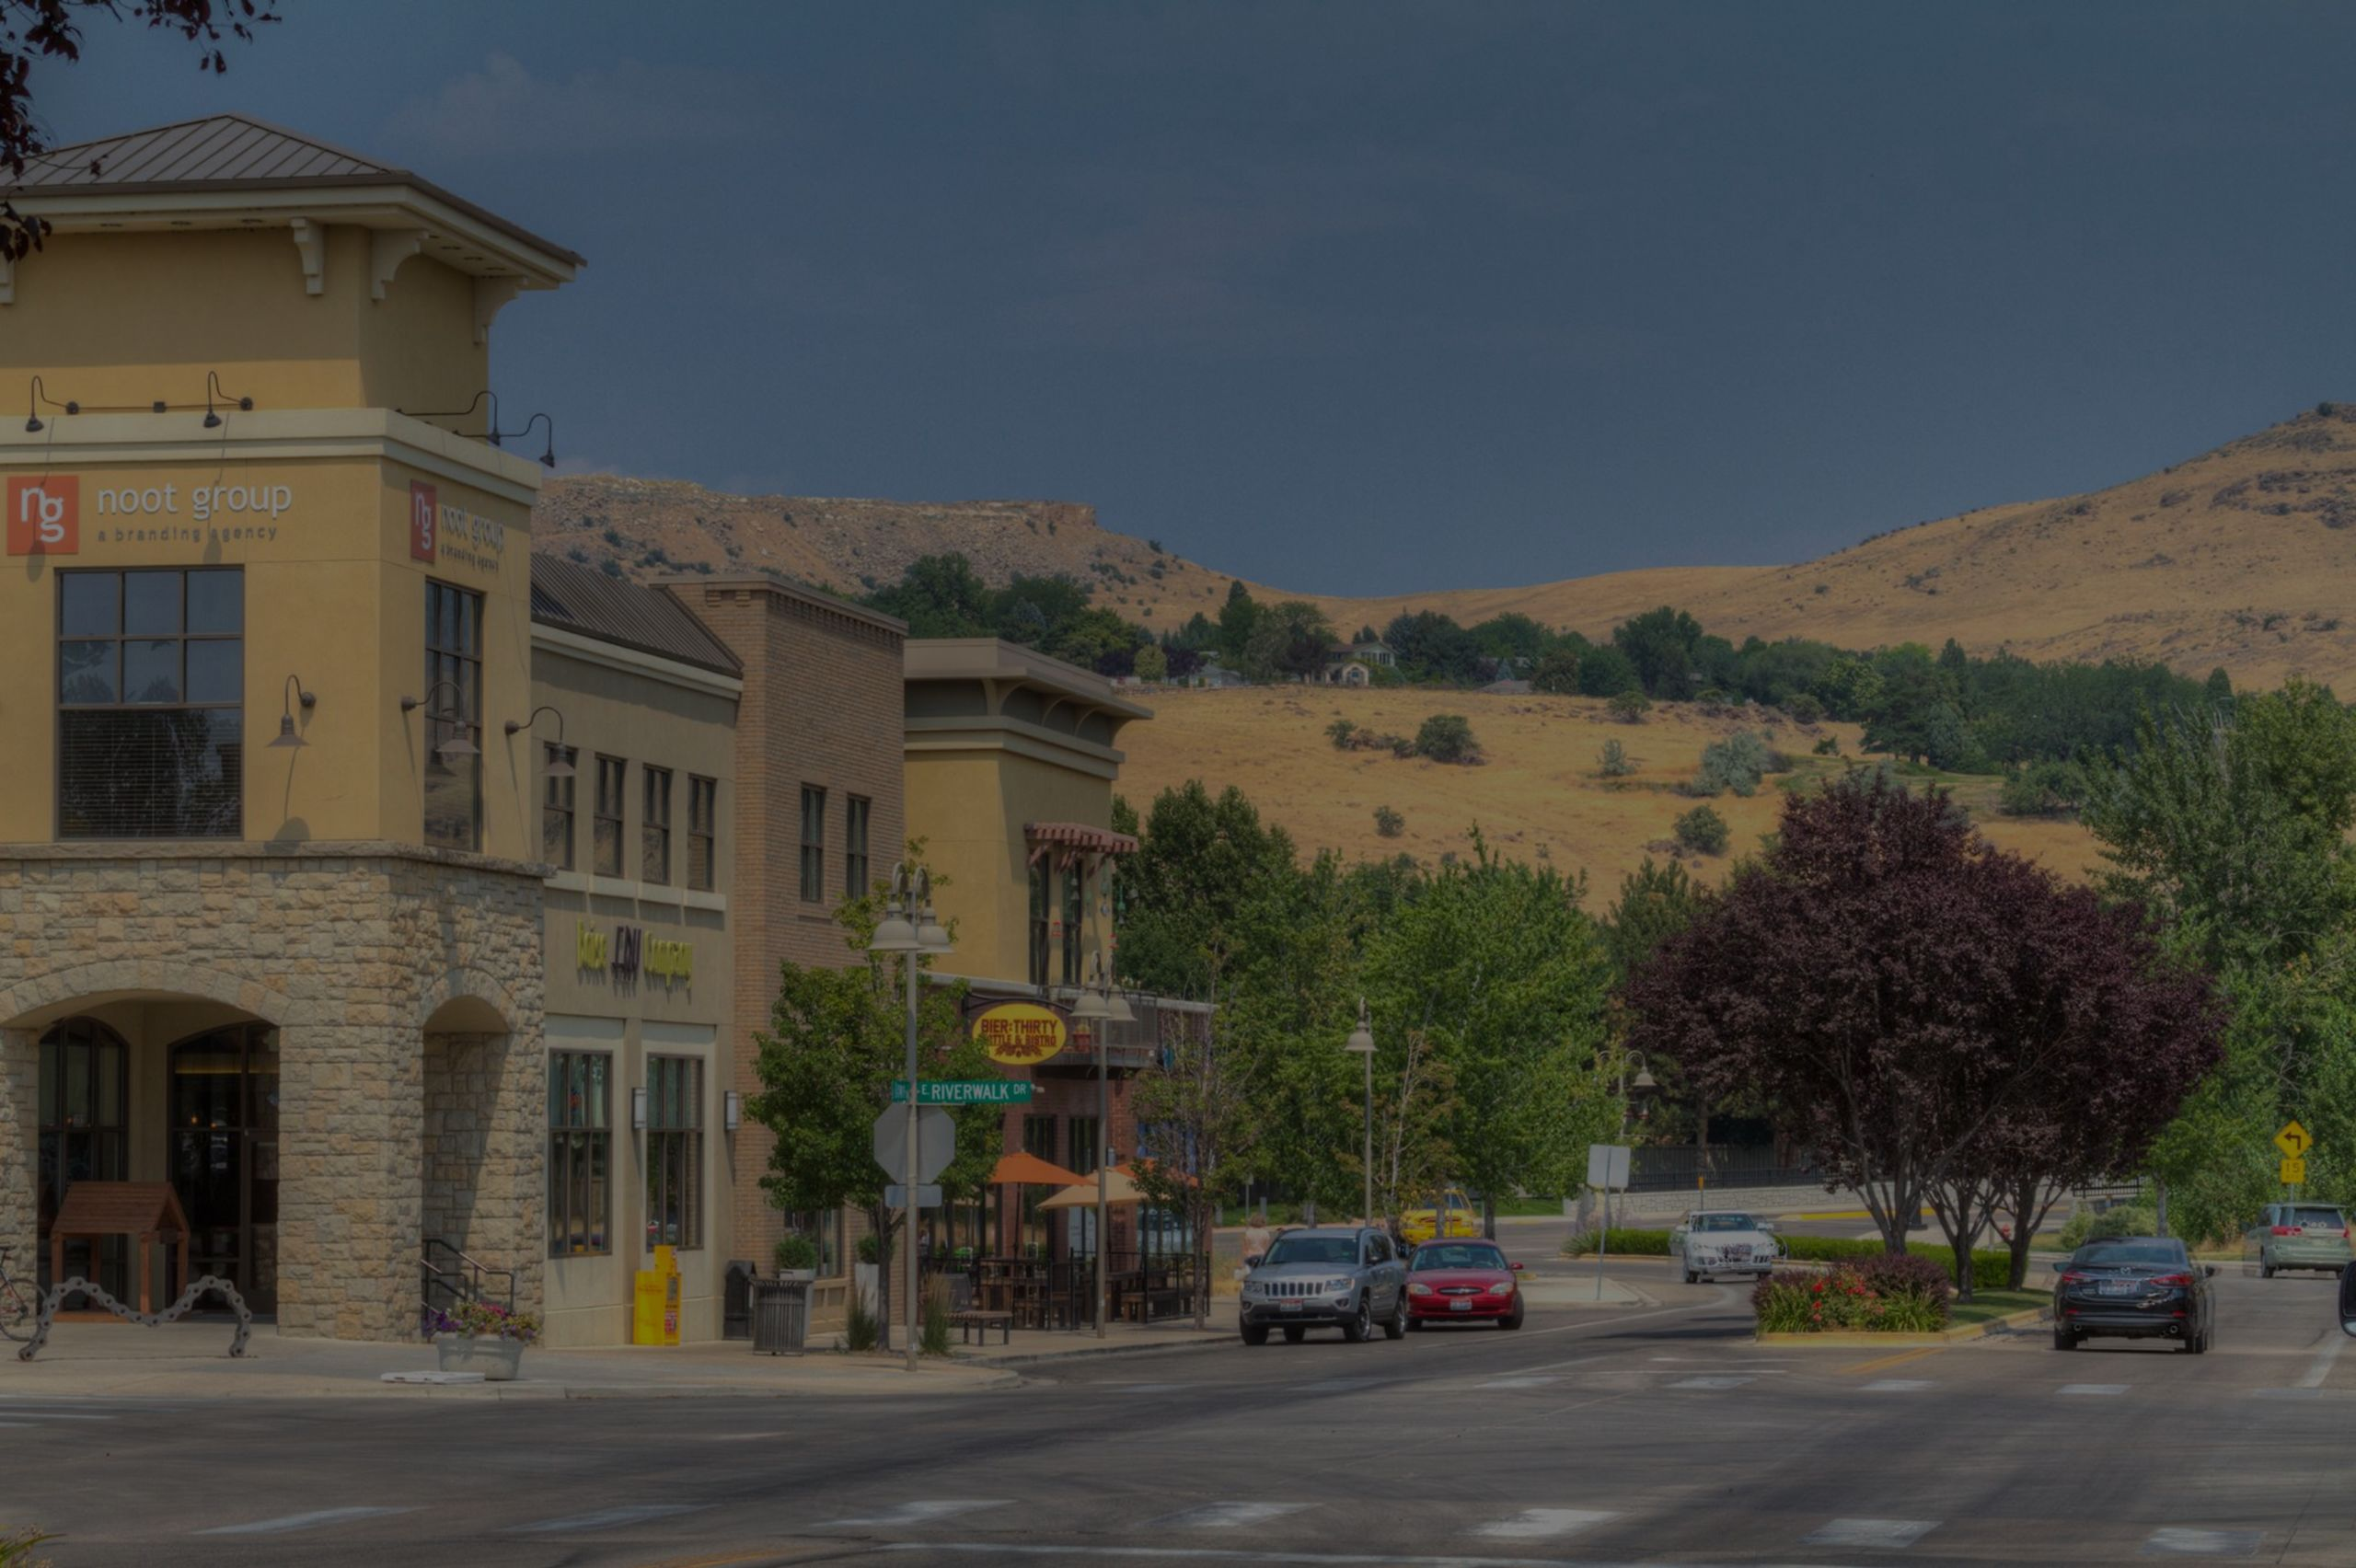 East Boise Real Estate Q5 Brokers